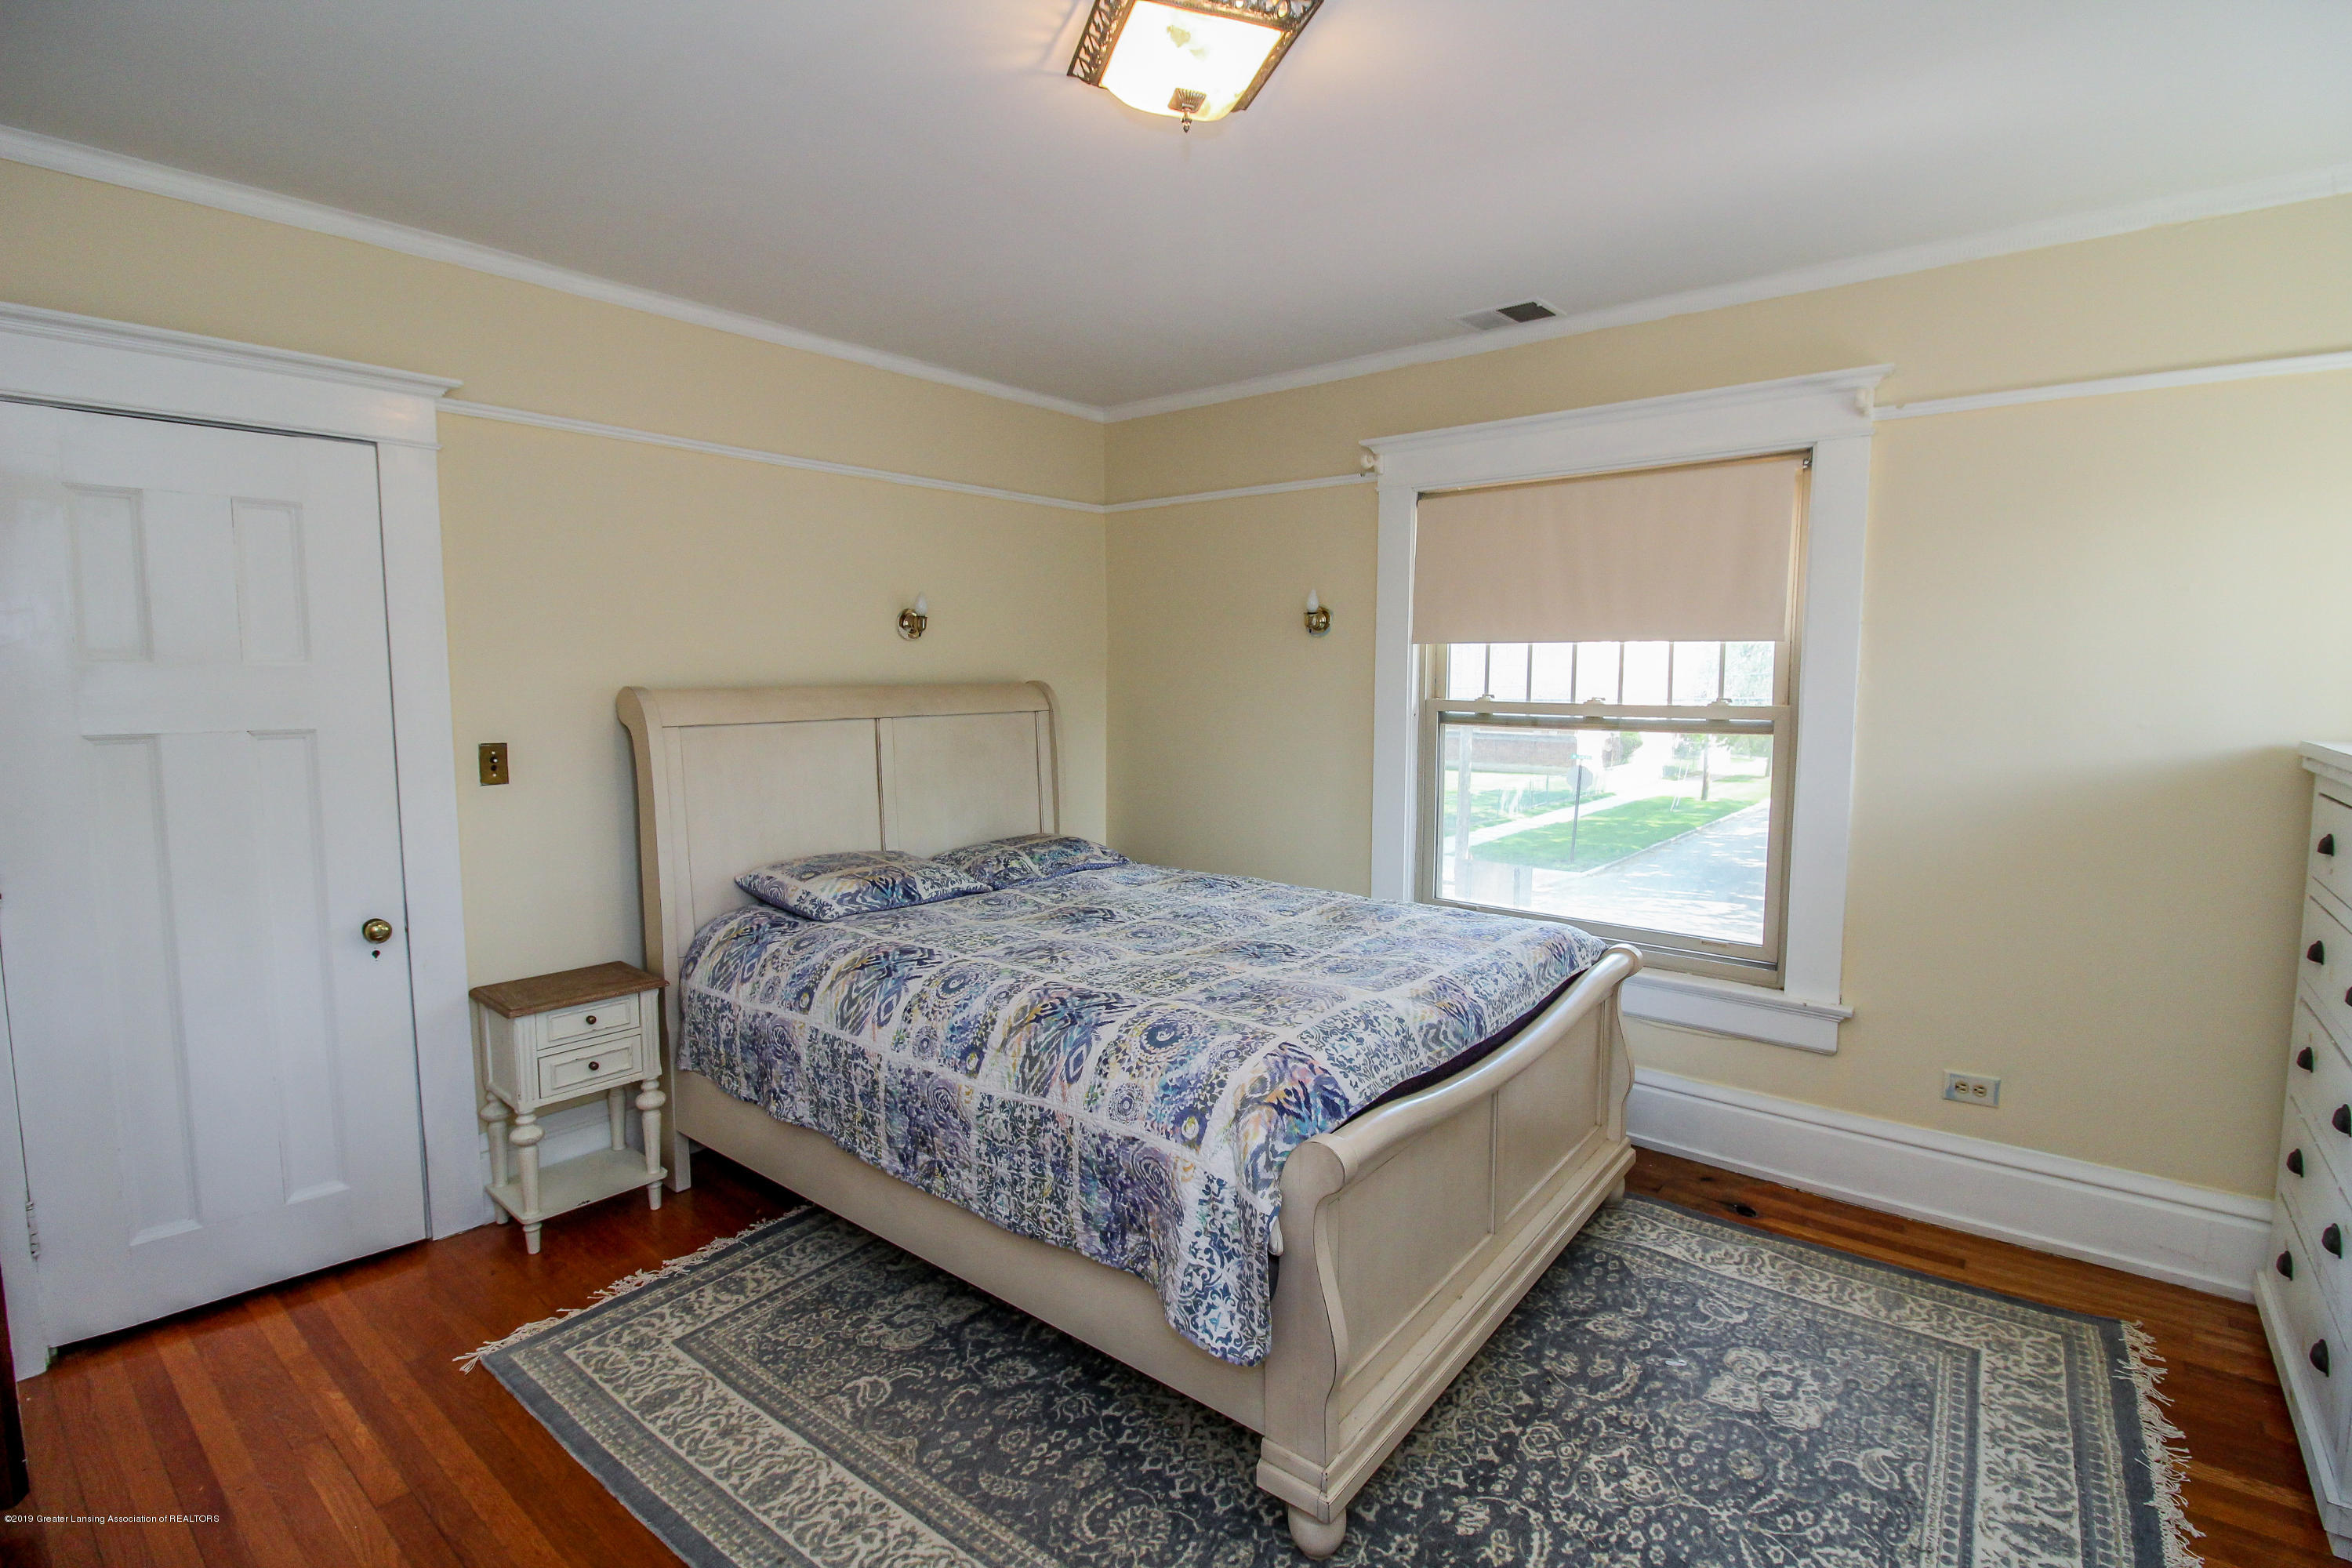 200 W Cass St - Bedroom - 37